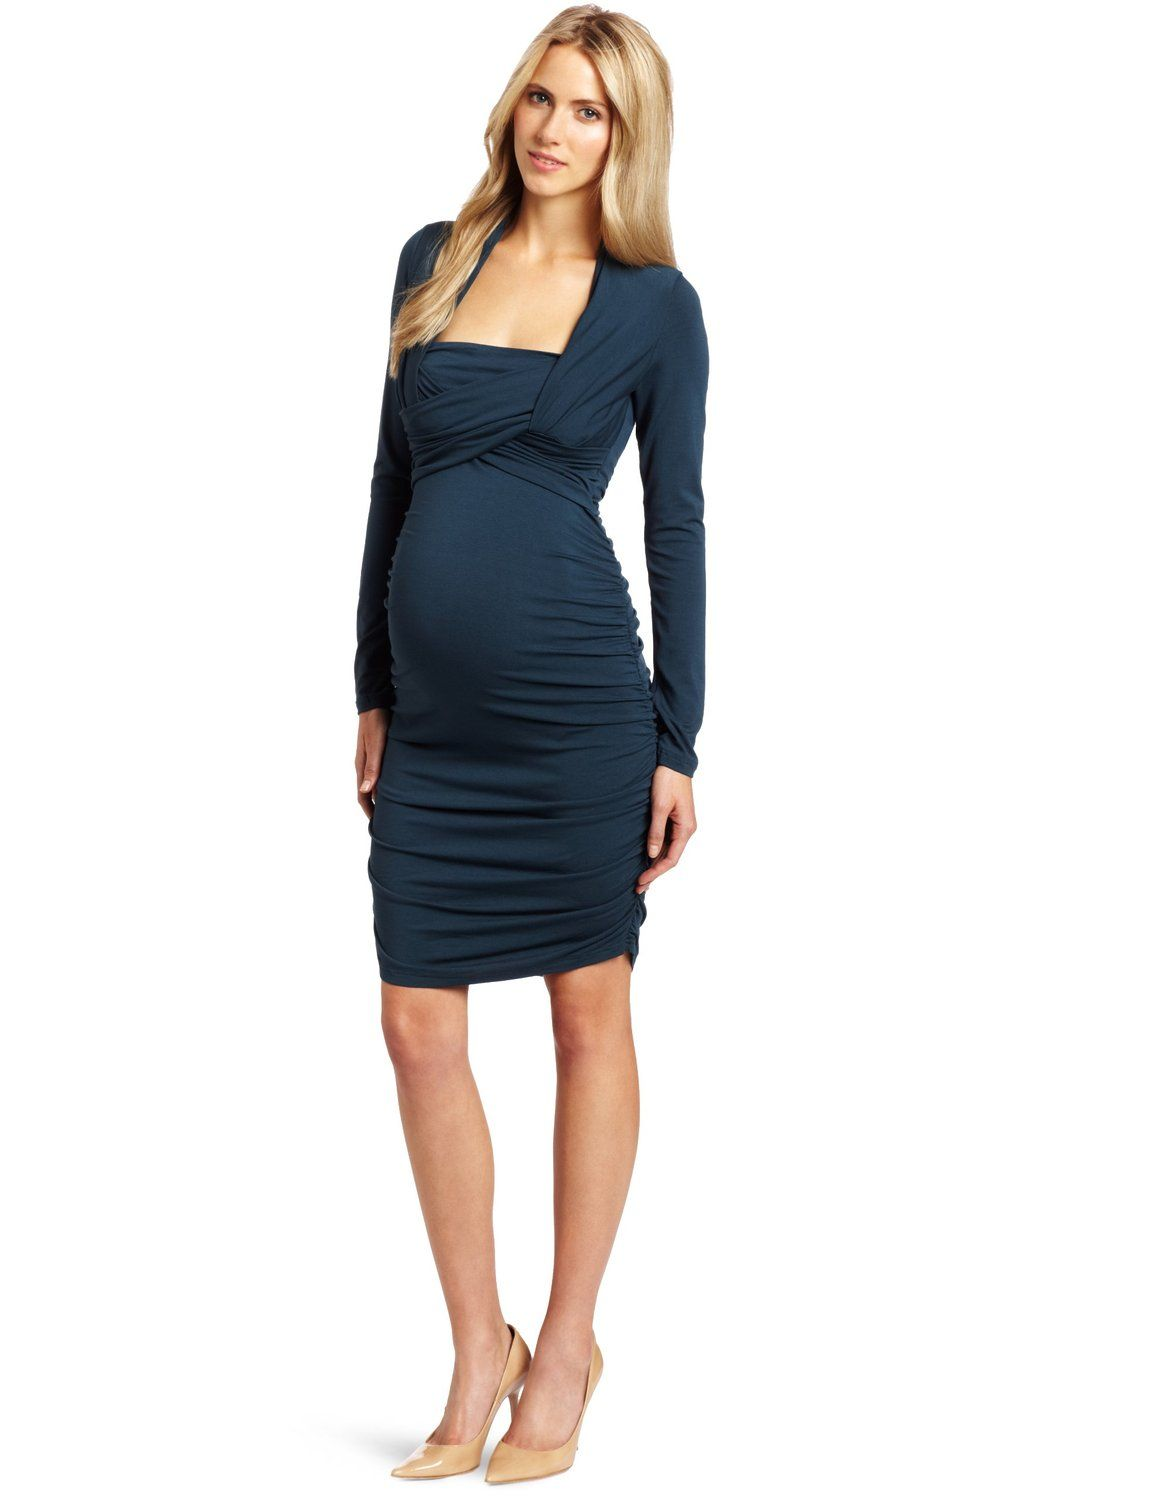 Cocktail maternity dress